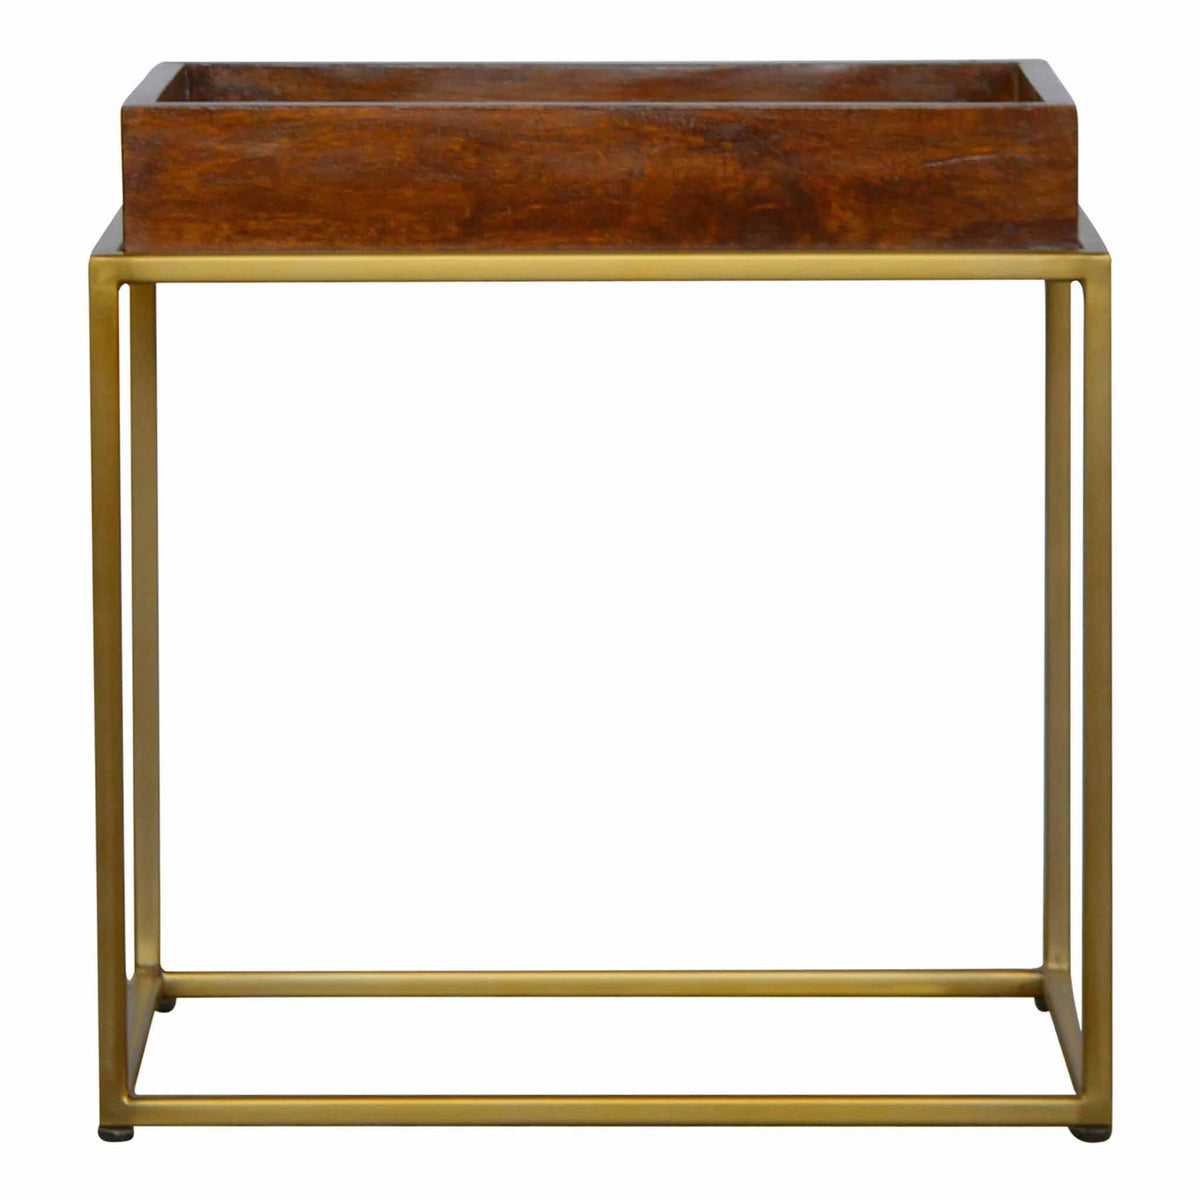 Artisan Chestnut Butler Tray Table with Gold Base